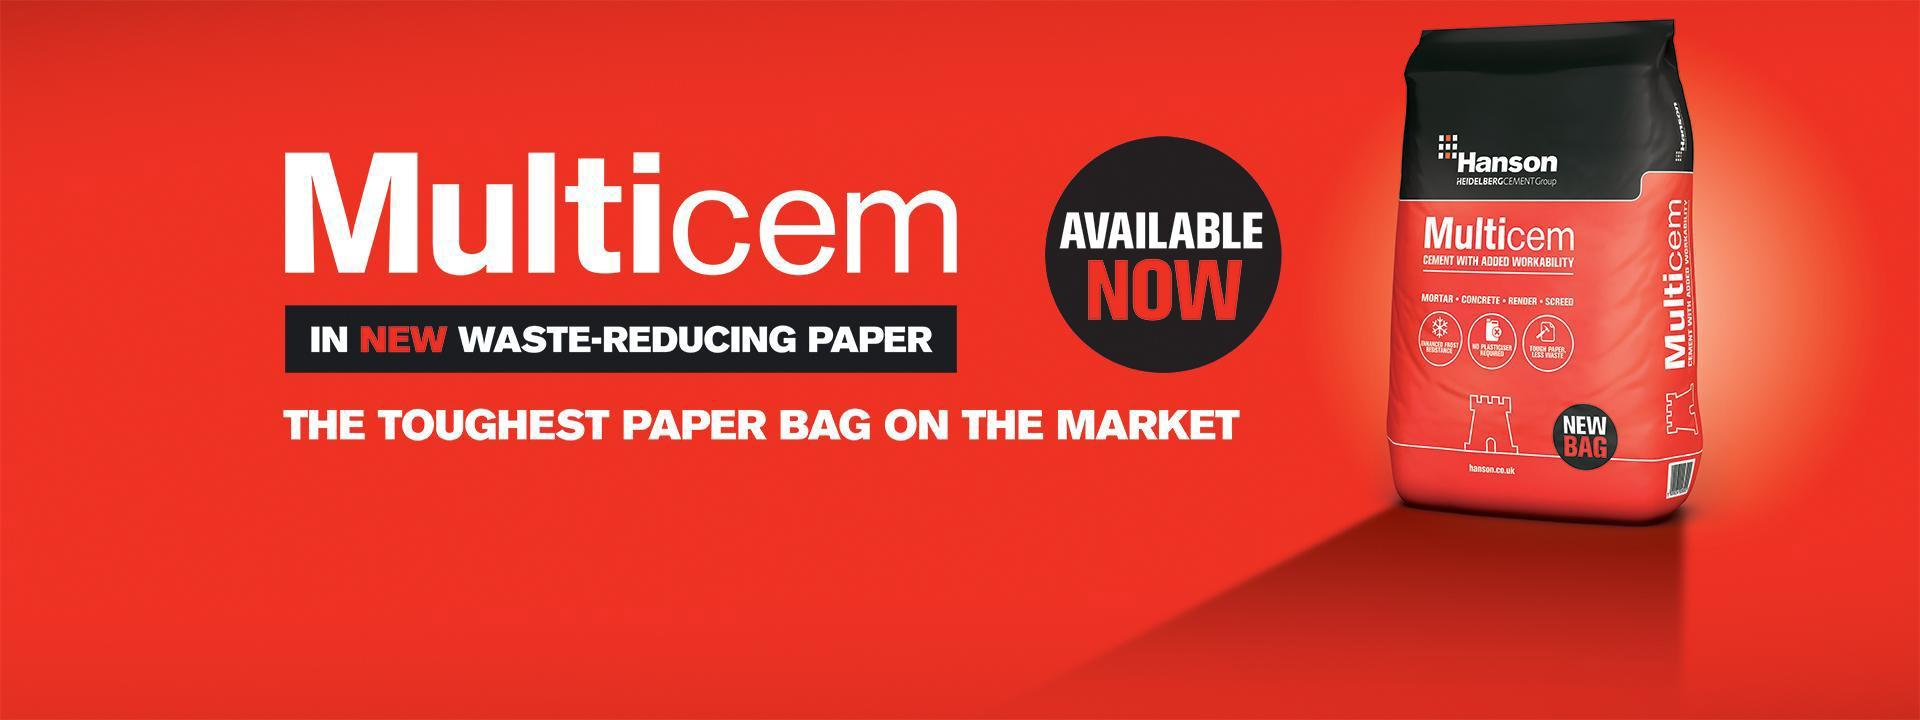 Multicem available in waste reducing paper.